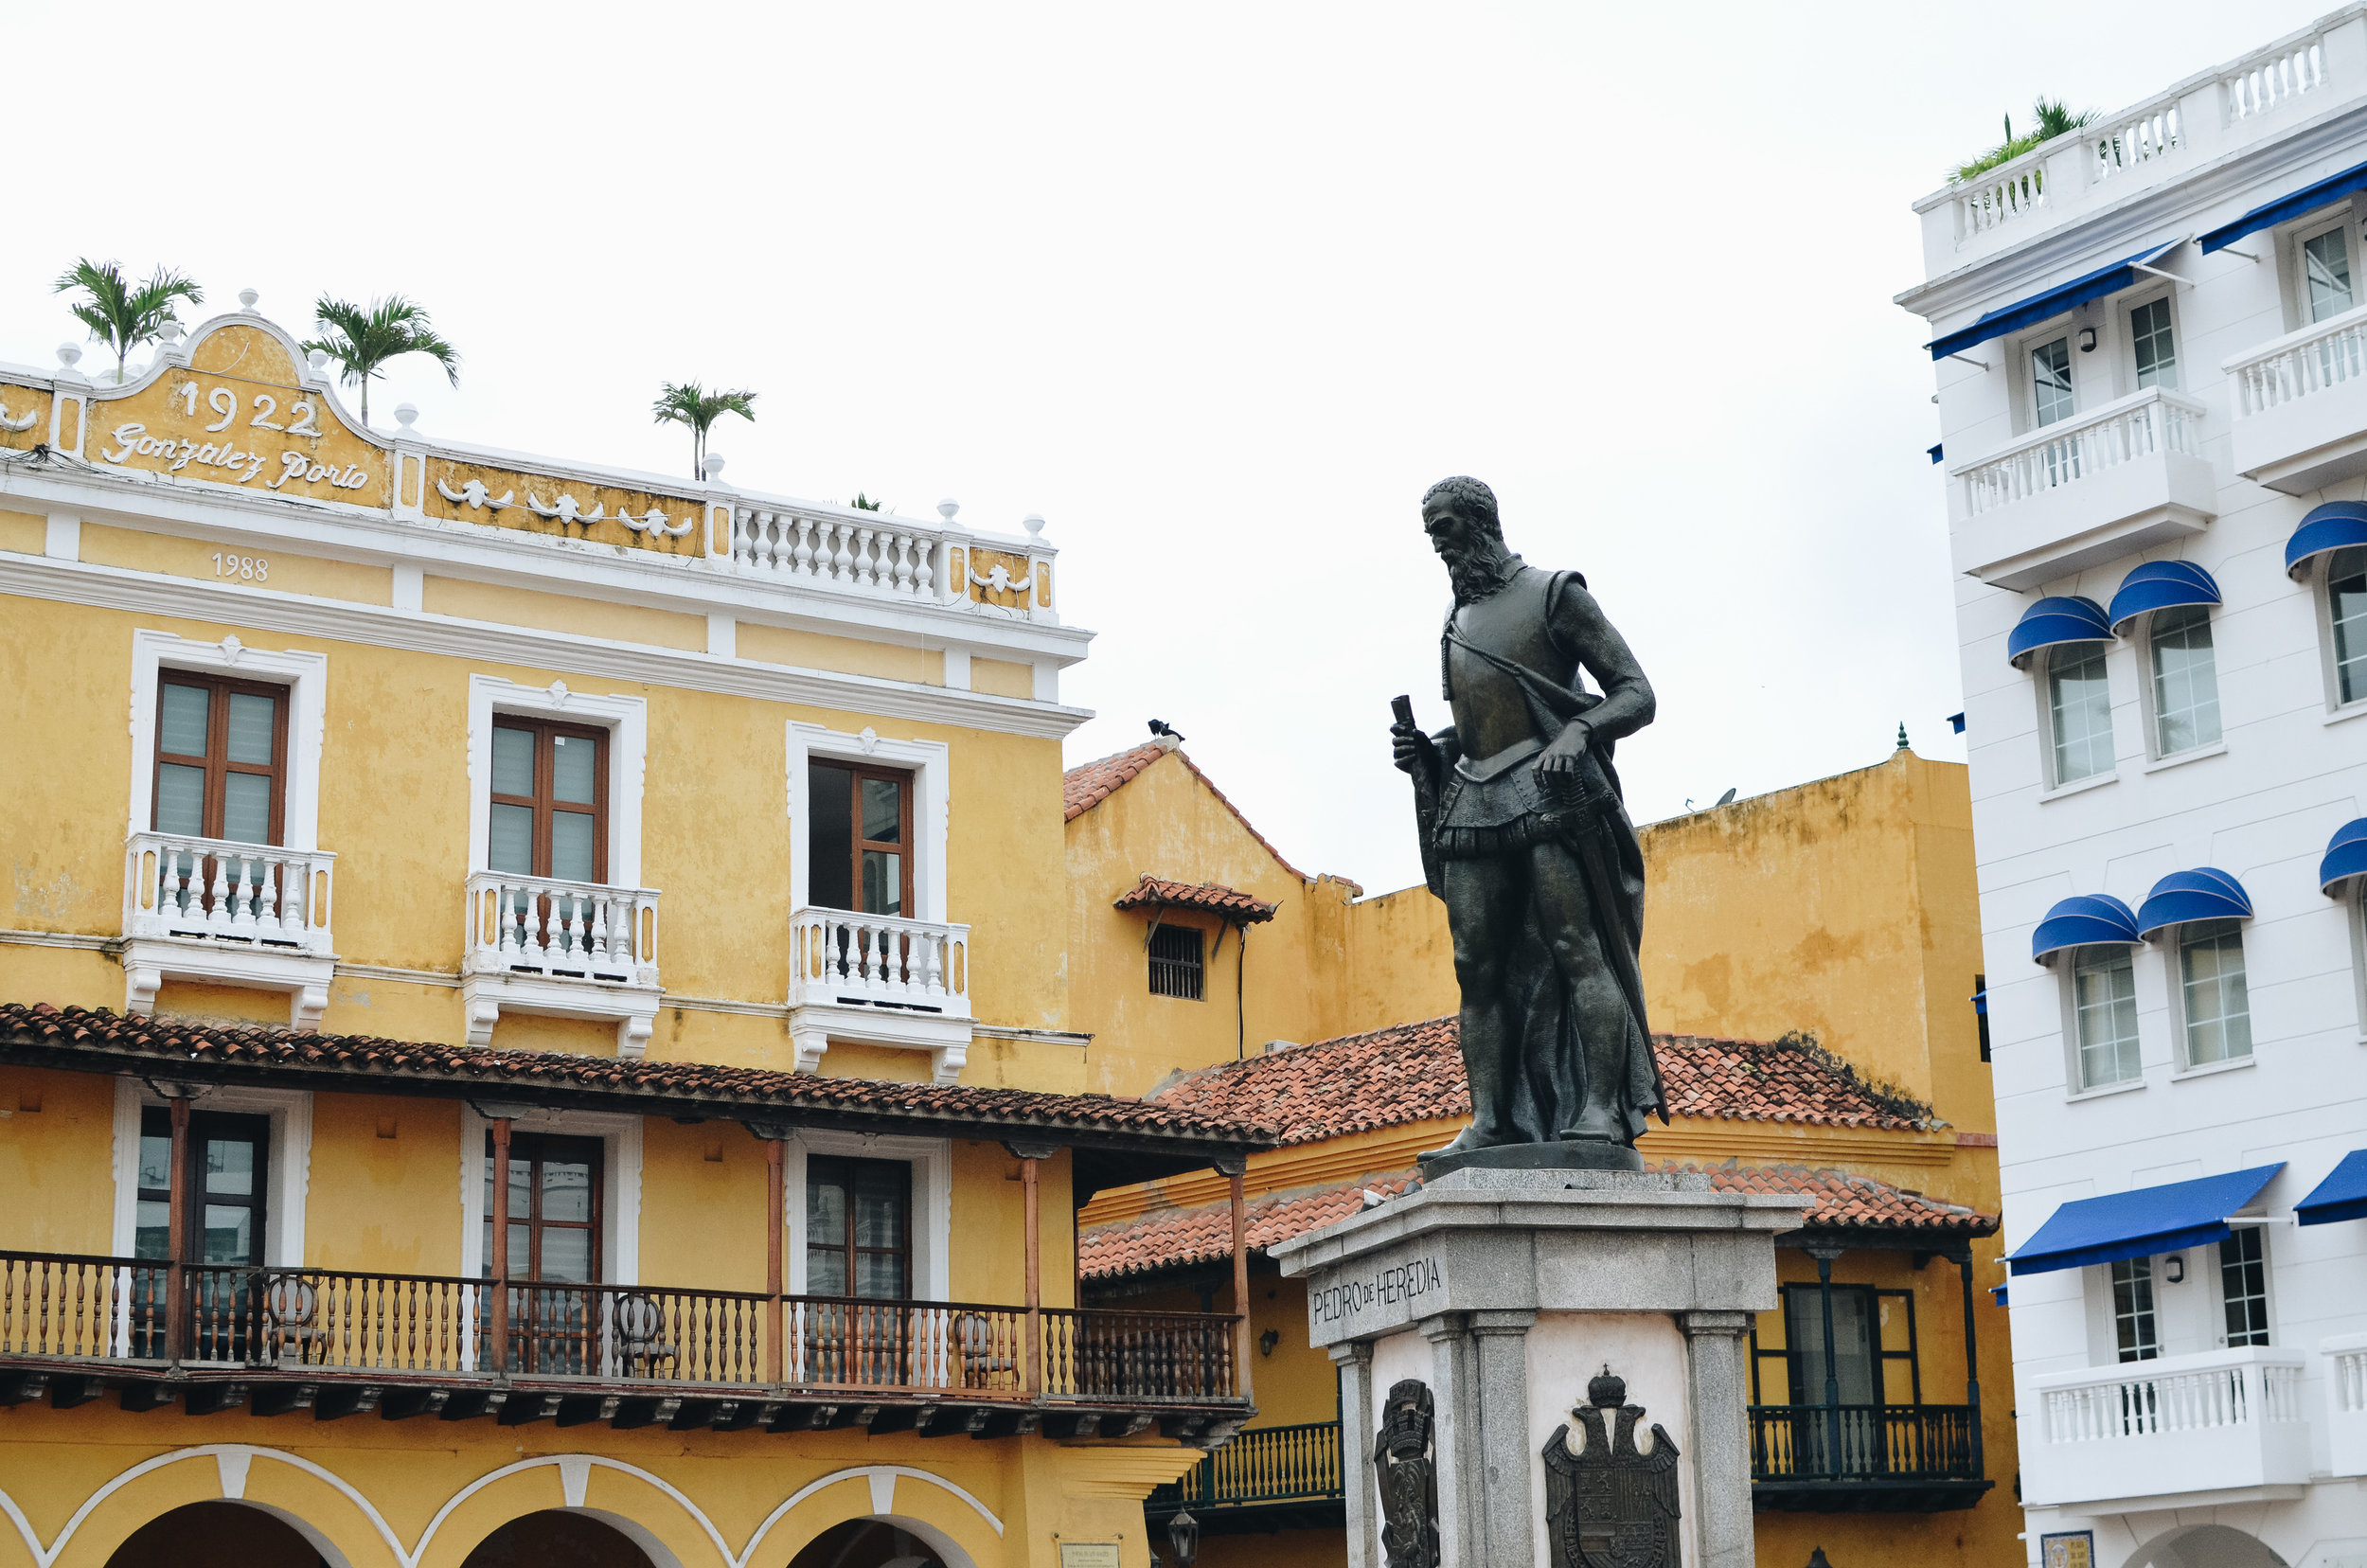 Cartagena_Colombia_Life_on_Pine_DSC_1013.jpg